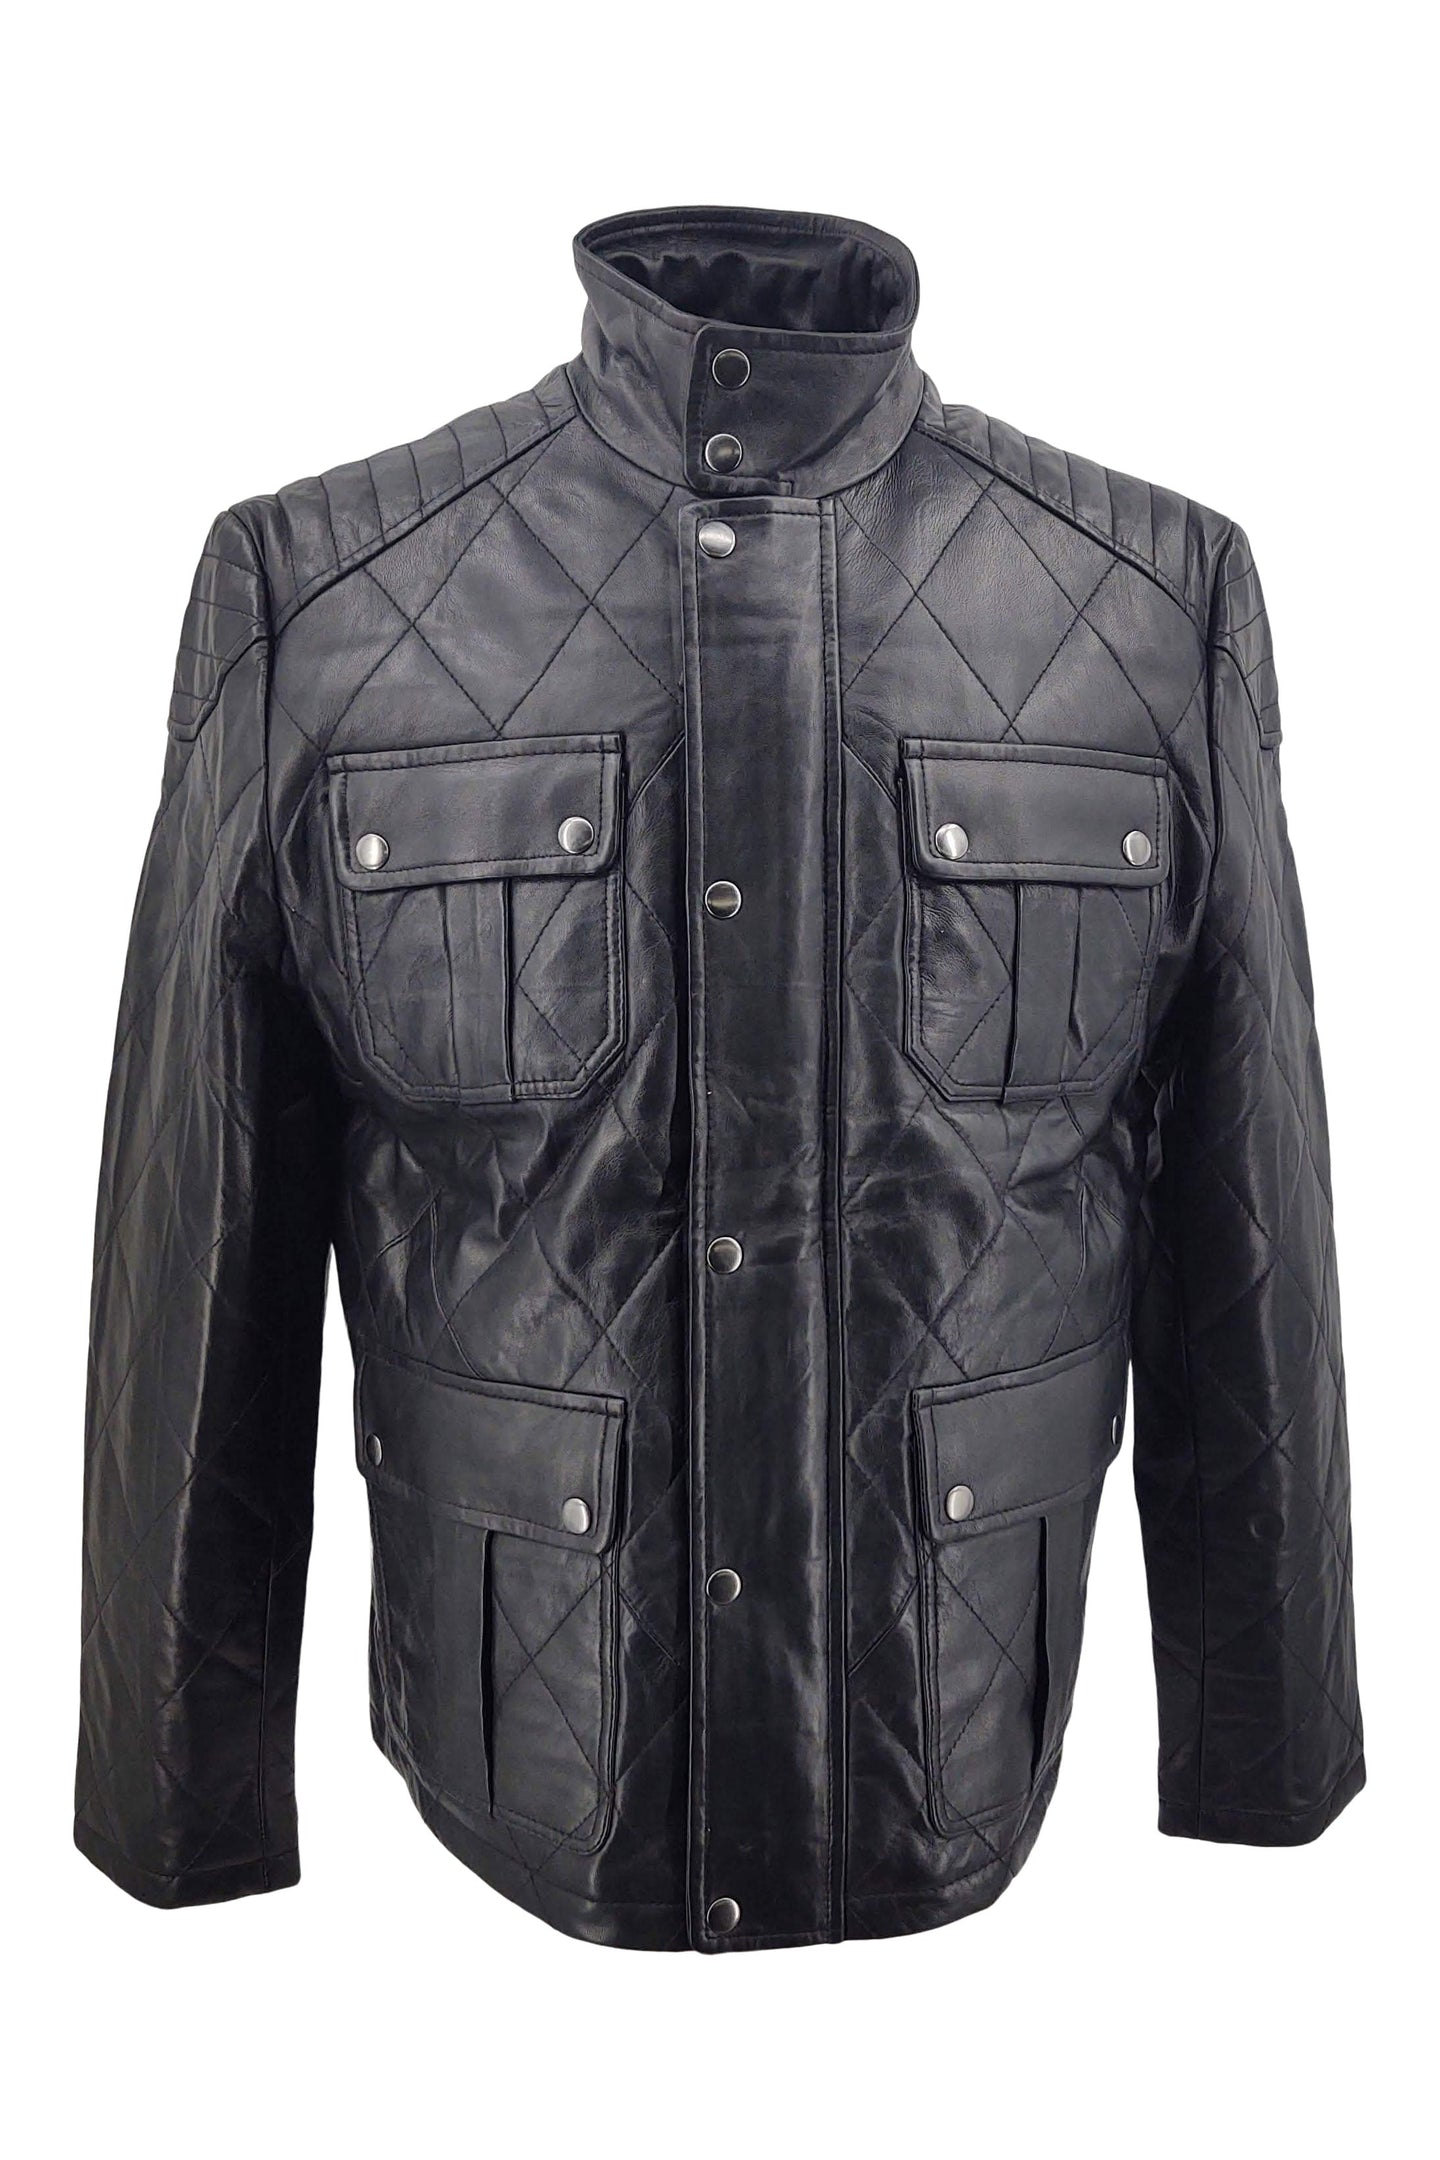 Jurgen - Lamb Boss Leather - Man - Black / Læderjakke | STAMPE PELS